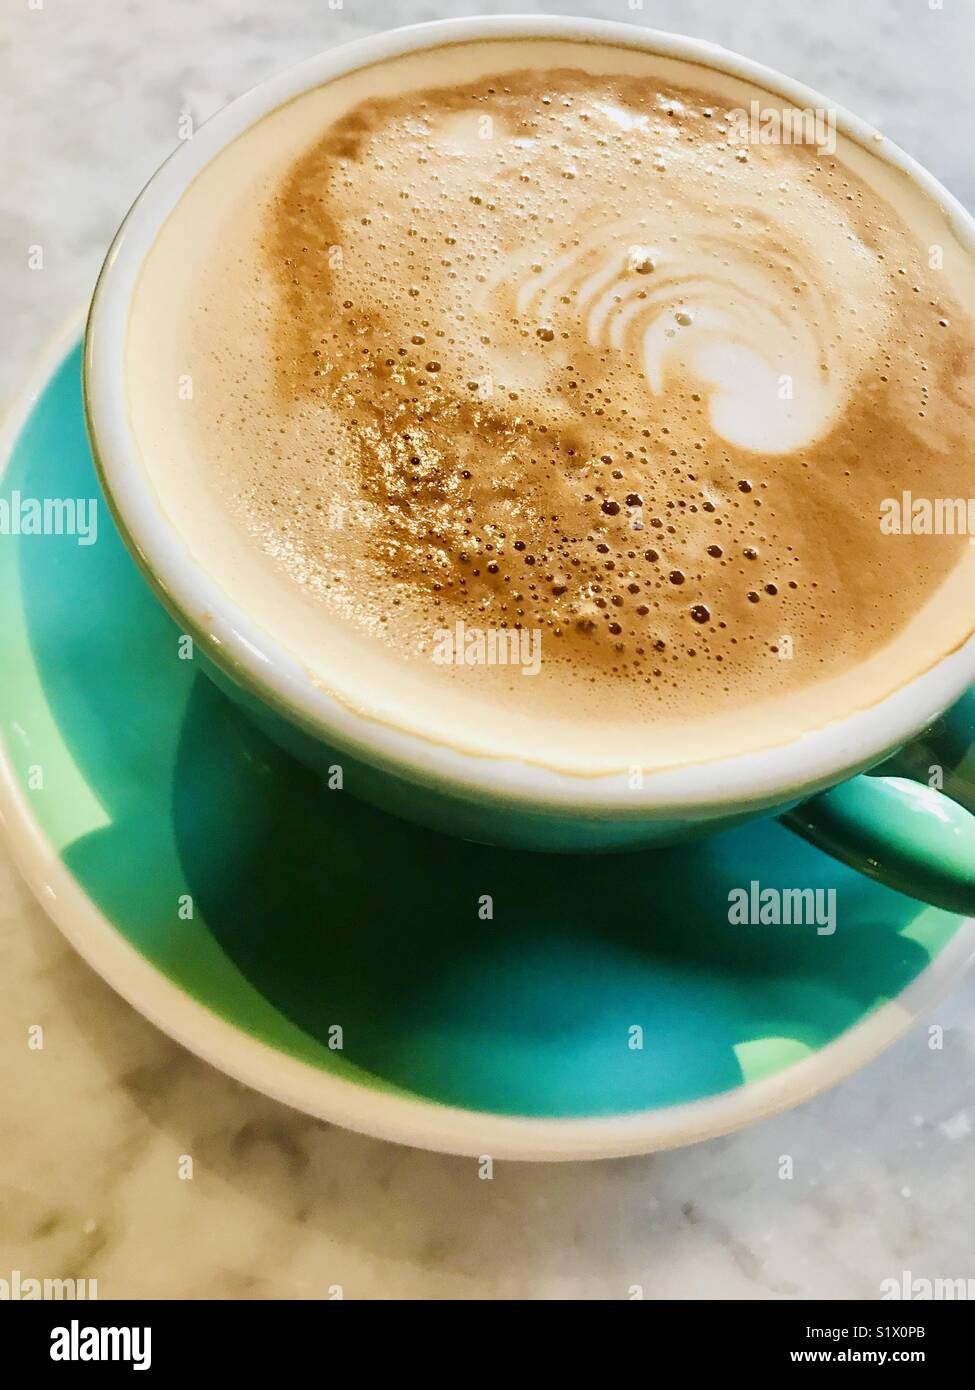 Flat white coffee served in a green cup - Stock Image